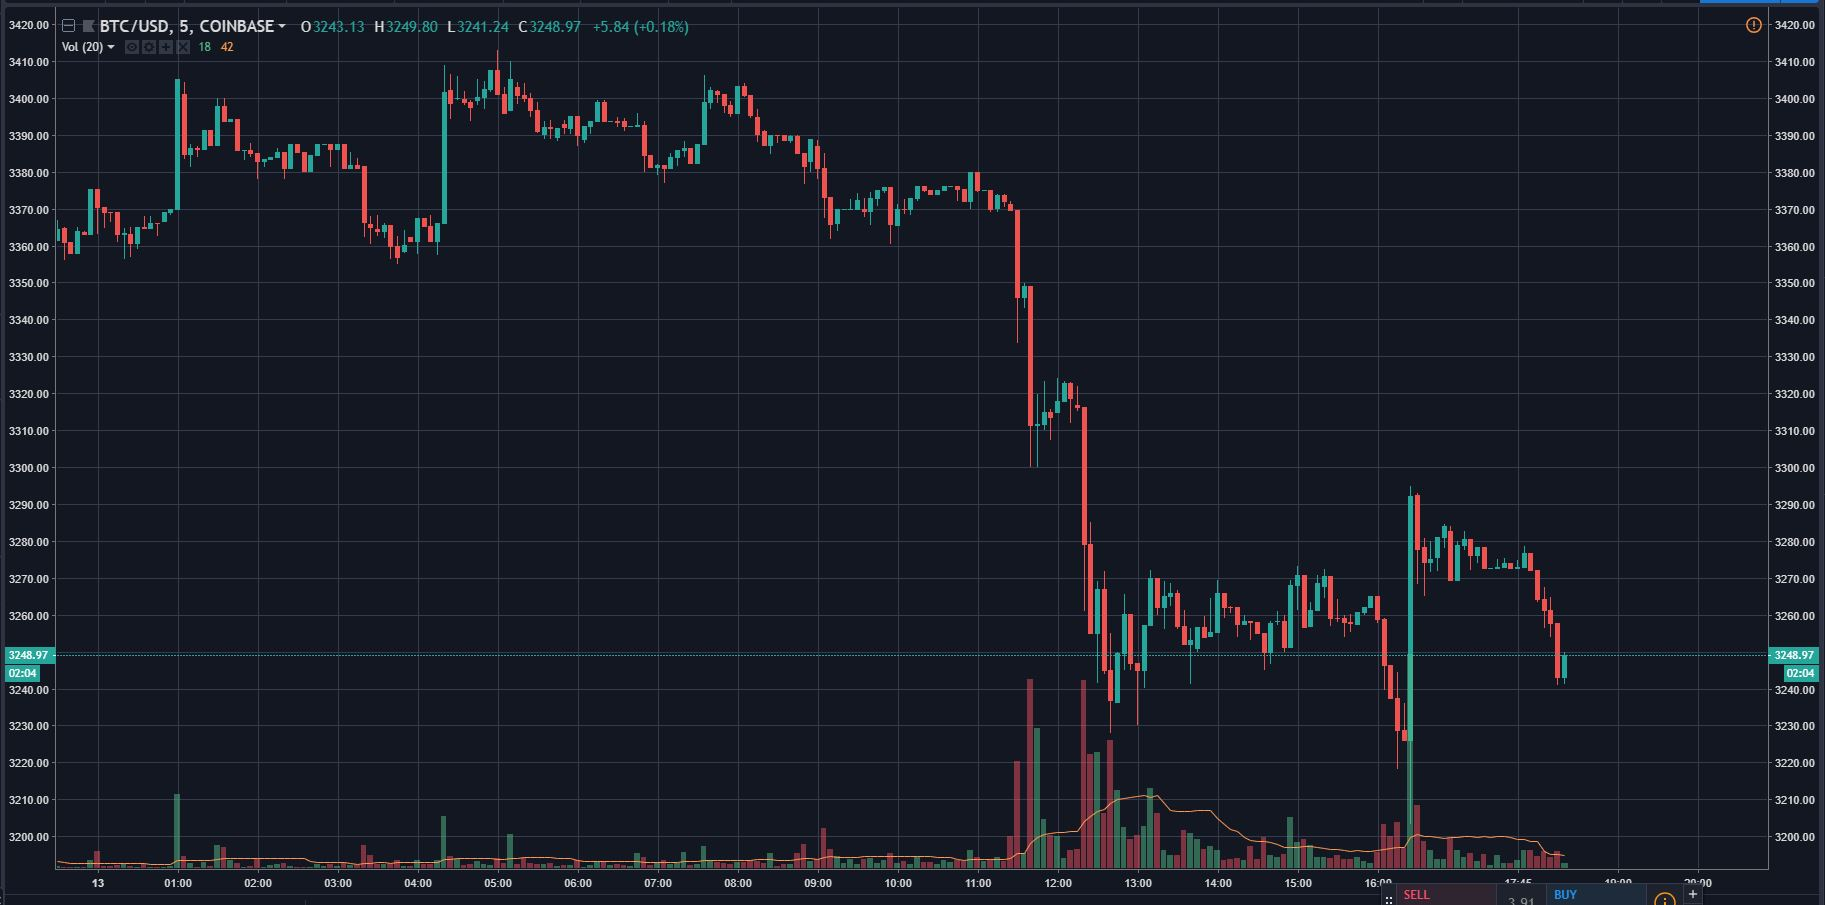 Bitcoin (BTC) Revisits YTD Low At $3,220, Crypto Fails To Breakout 15